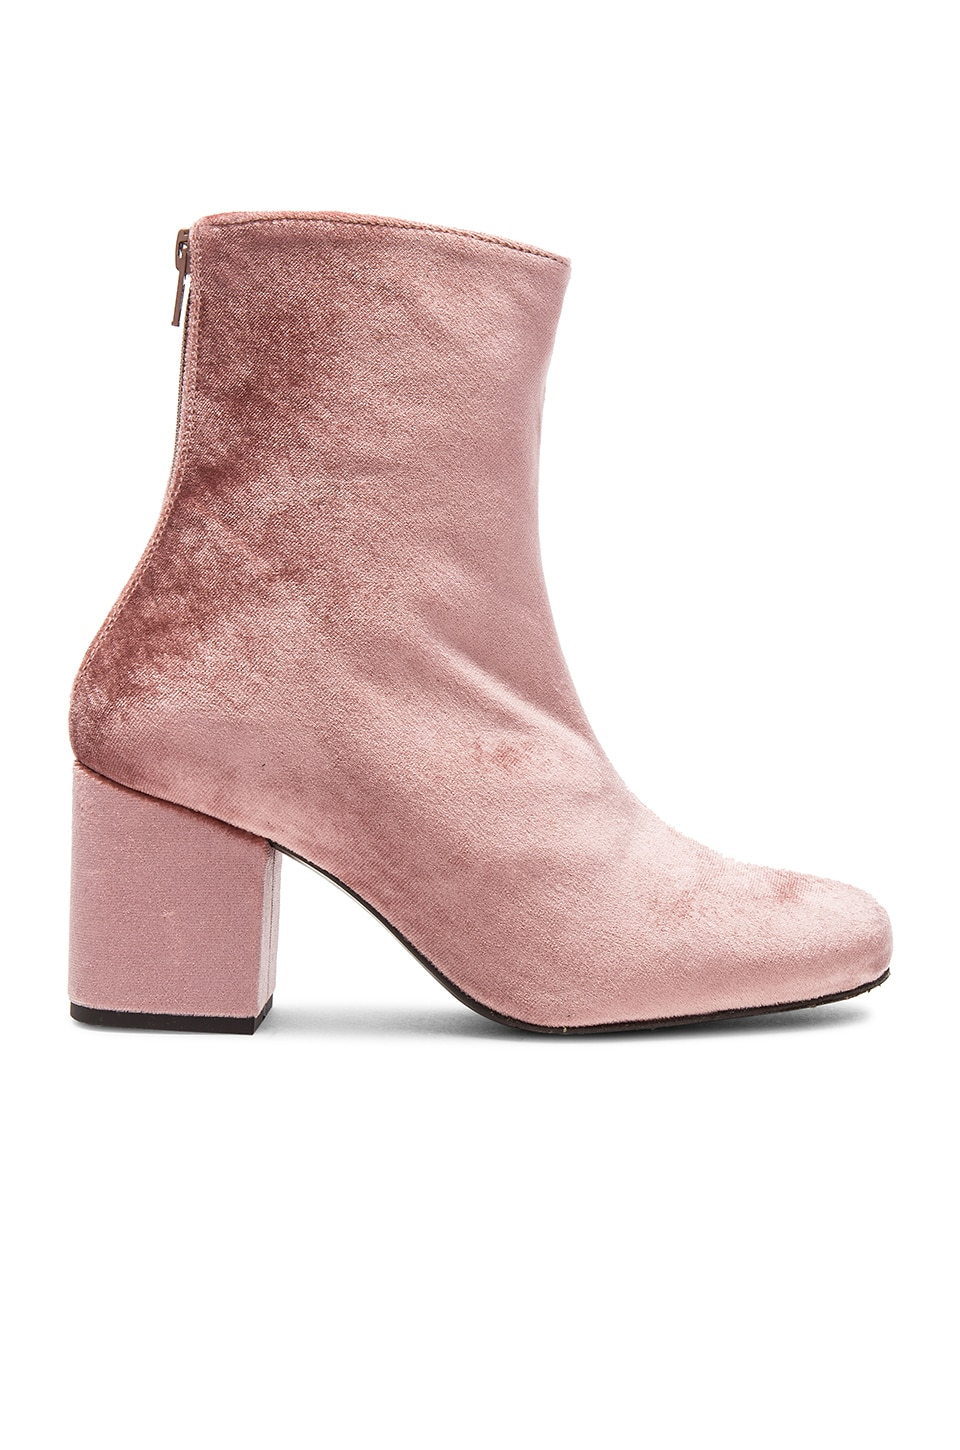 Free People Velvet Cecile Bootie in Rose